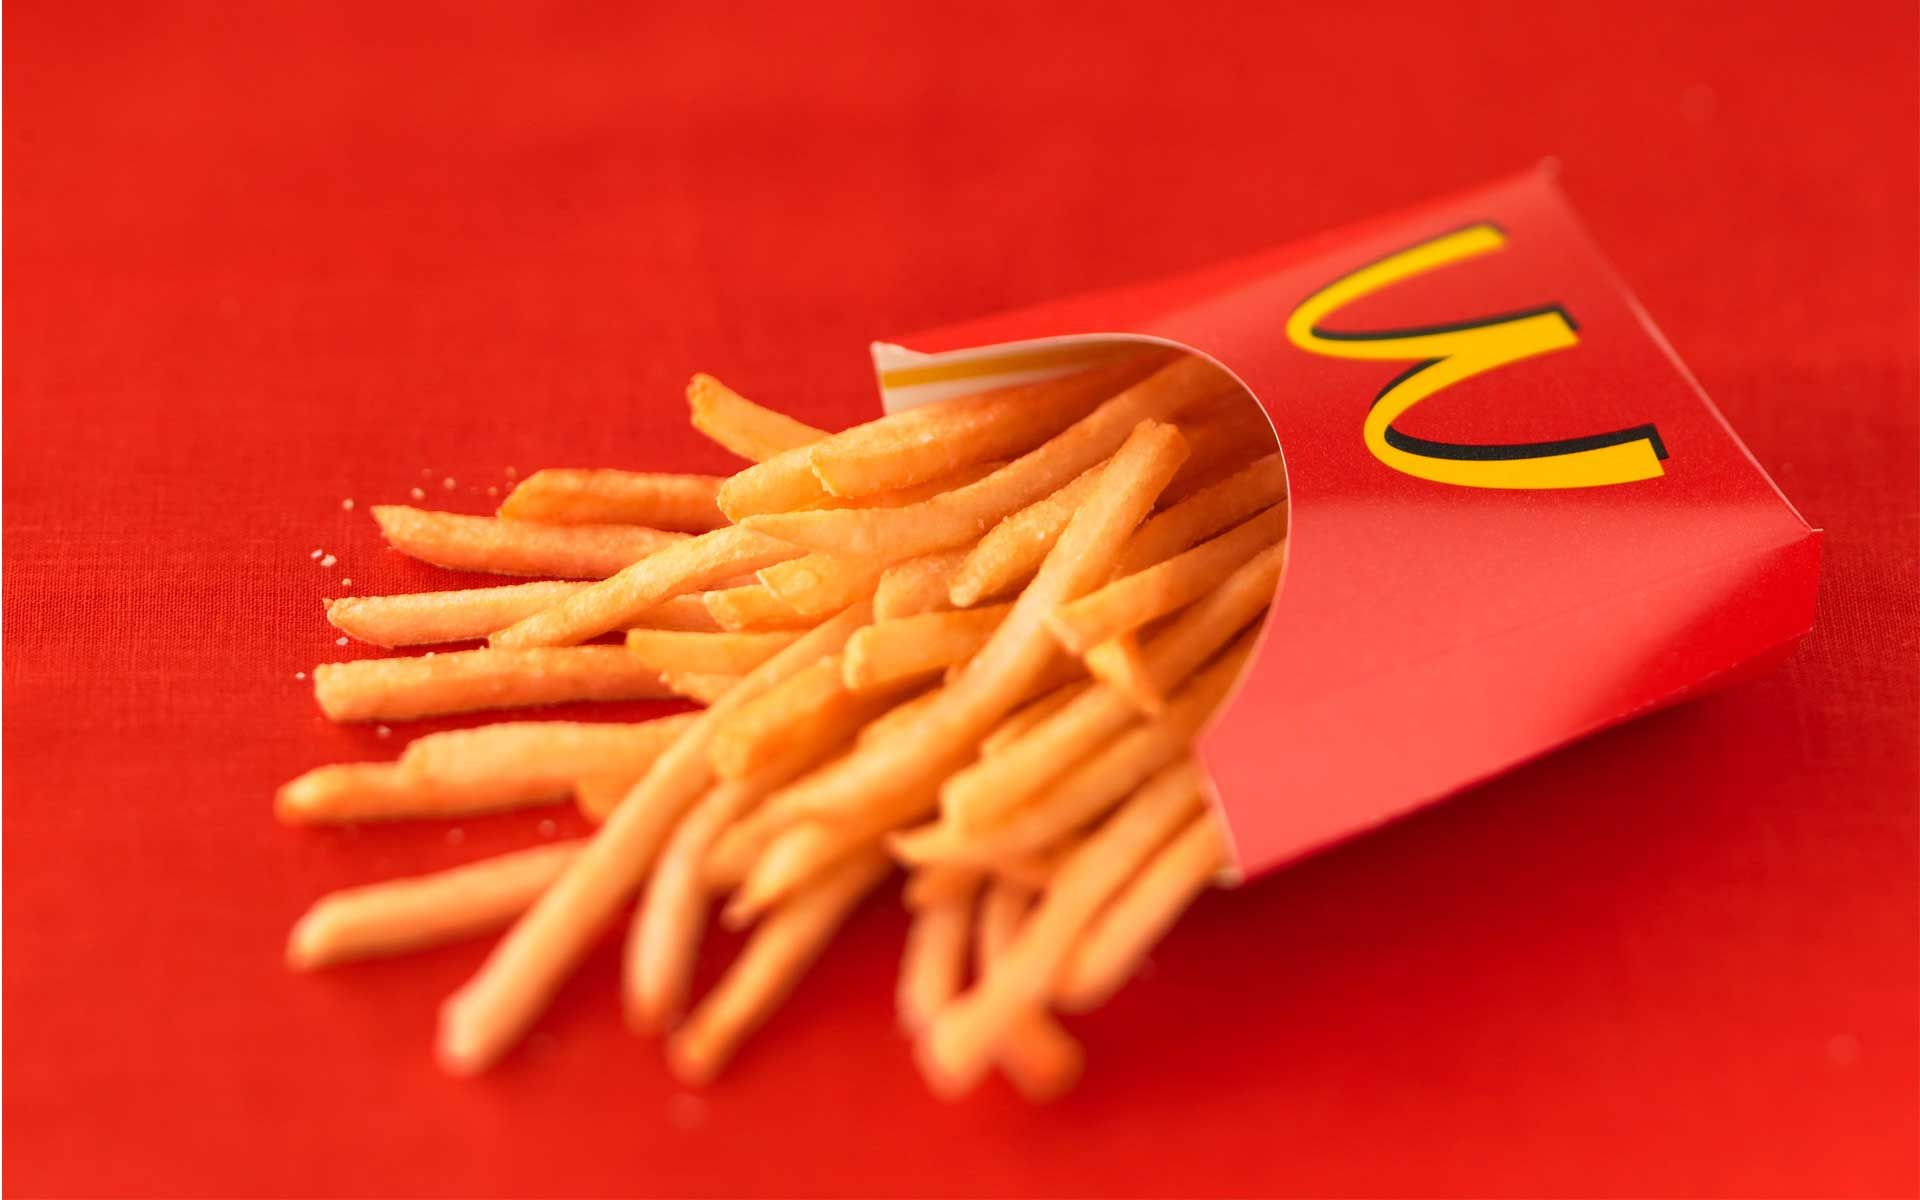 Fast Food French Fries Photography Wallpaper Auto Desktop Background Features Wallpapers High Quality Wallpapers 간식